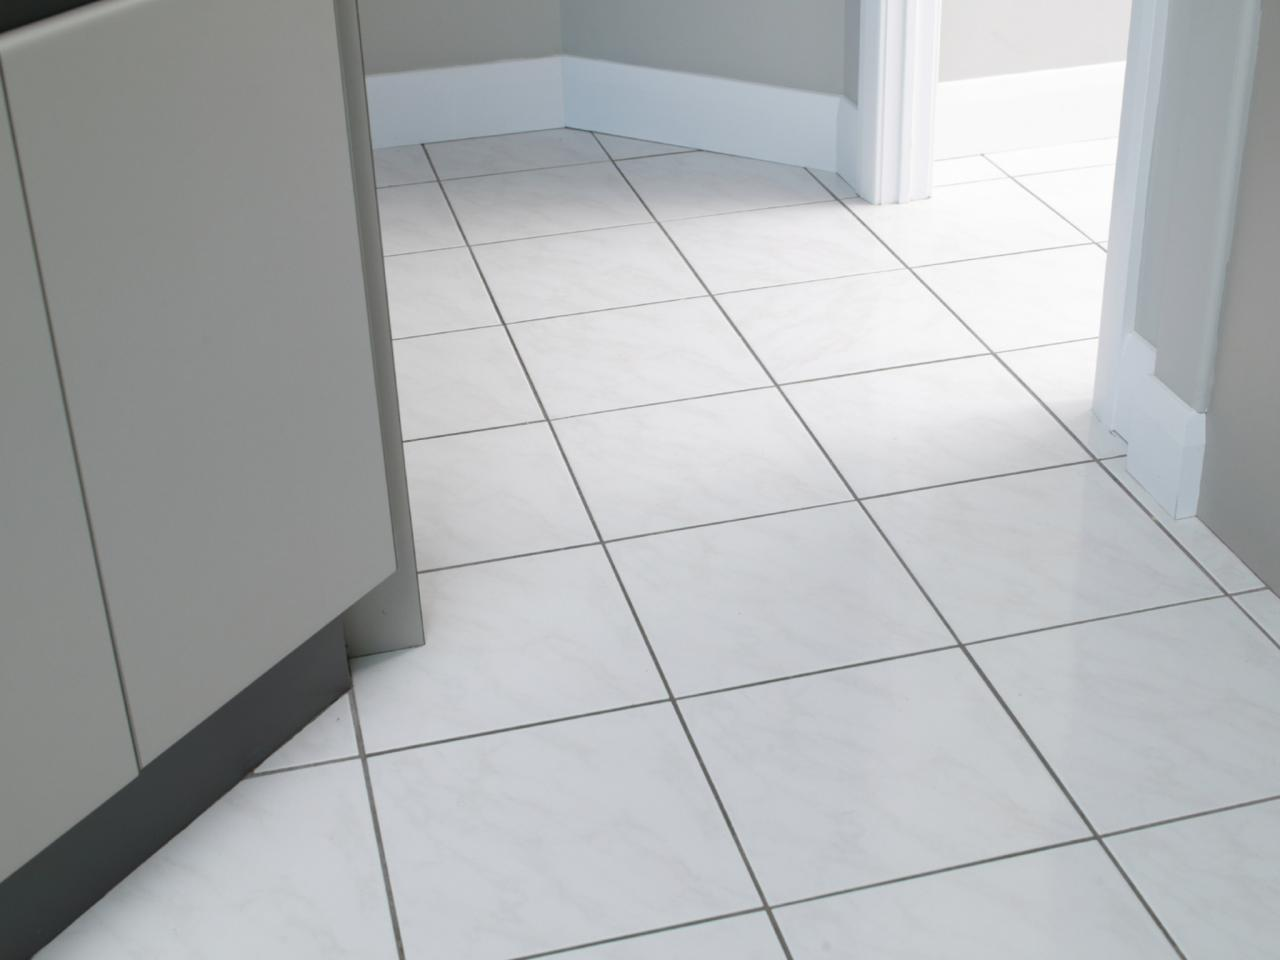 Related To Ceramic Tile Cleaning Floors